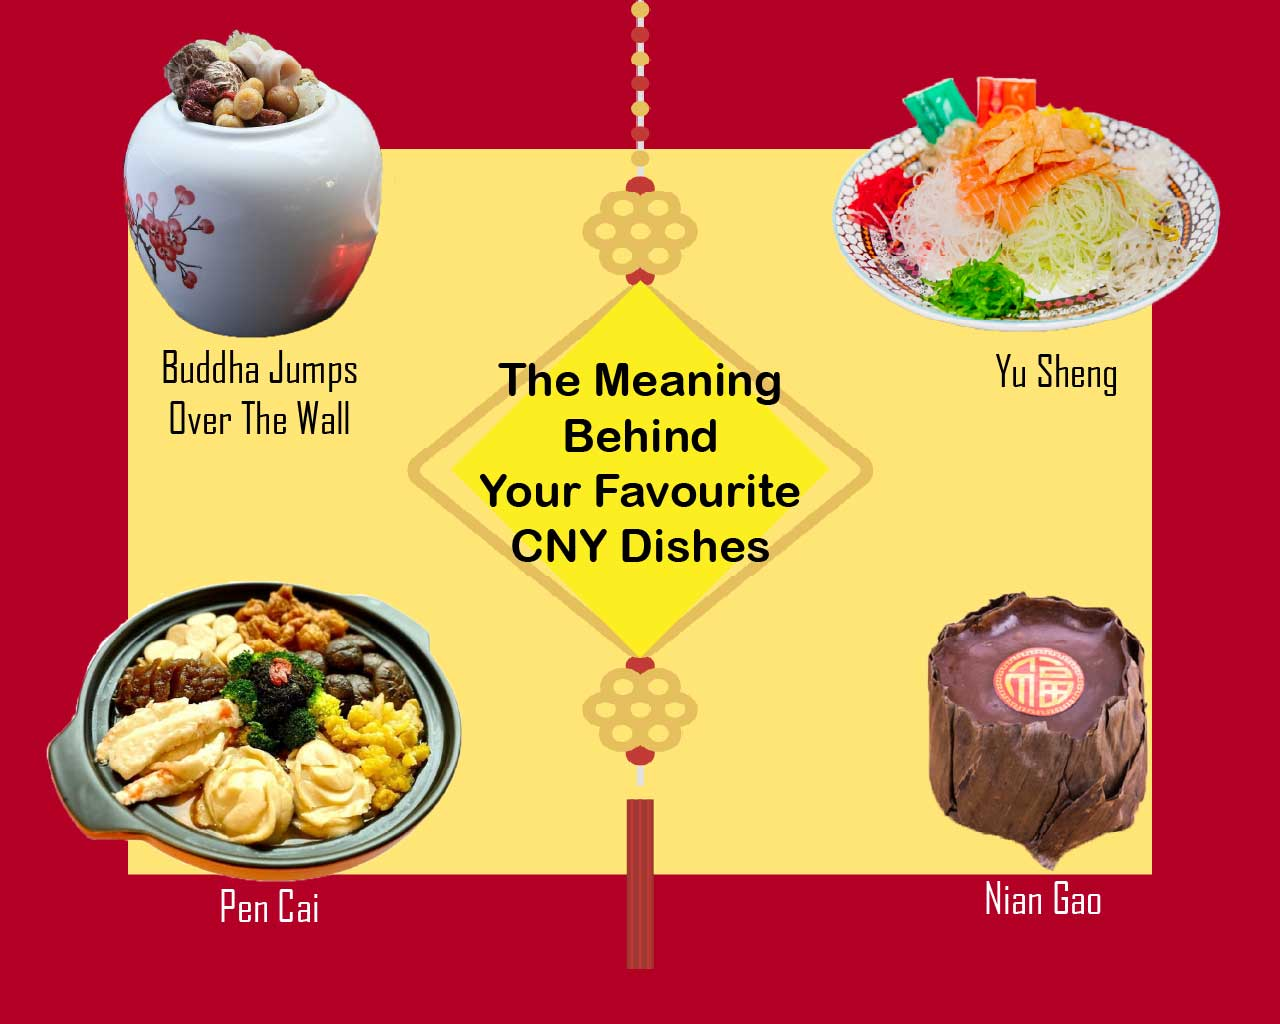 The Meaning Behind Your Favourite CNY Dishes